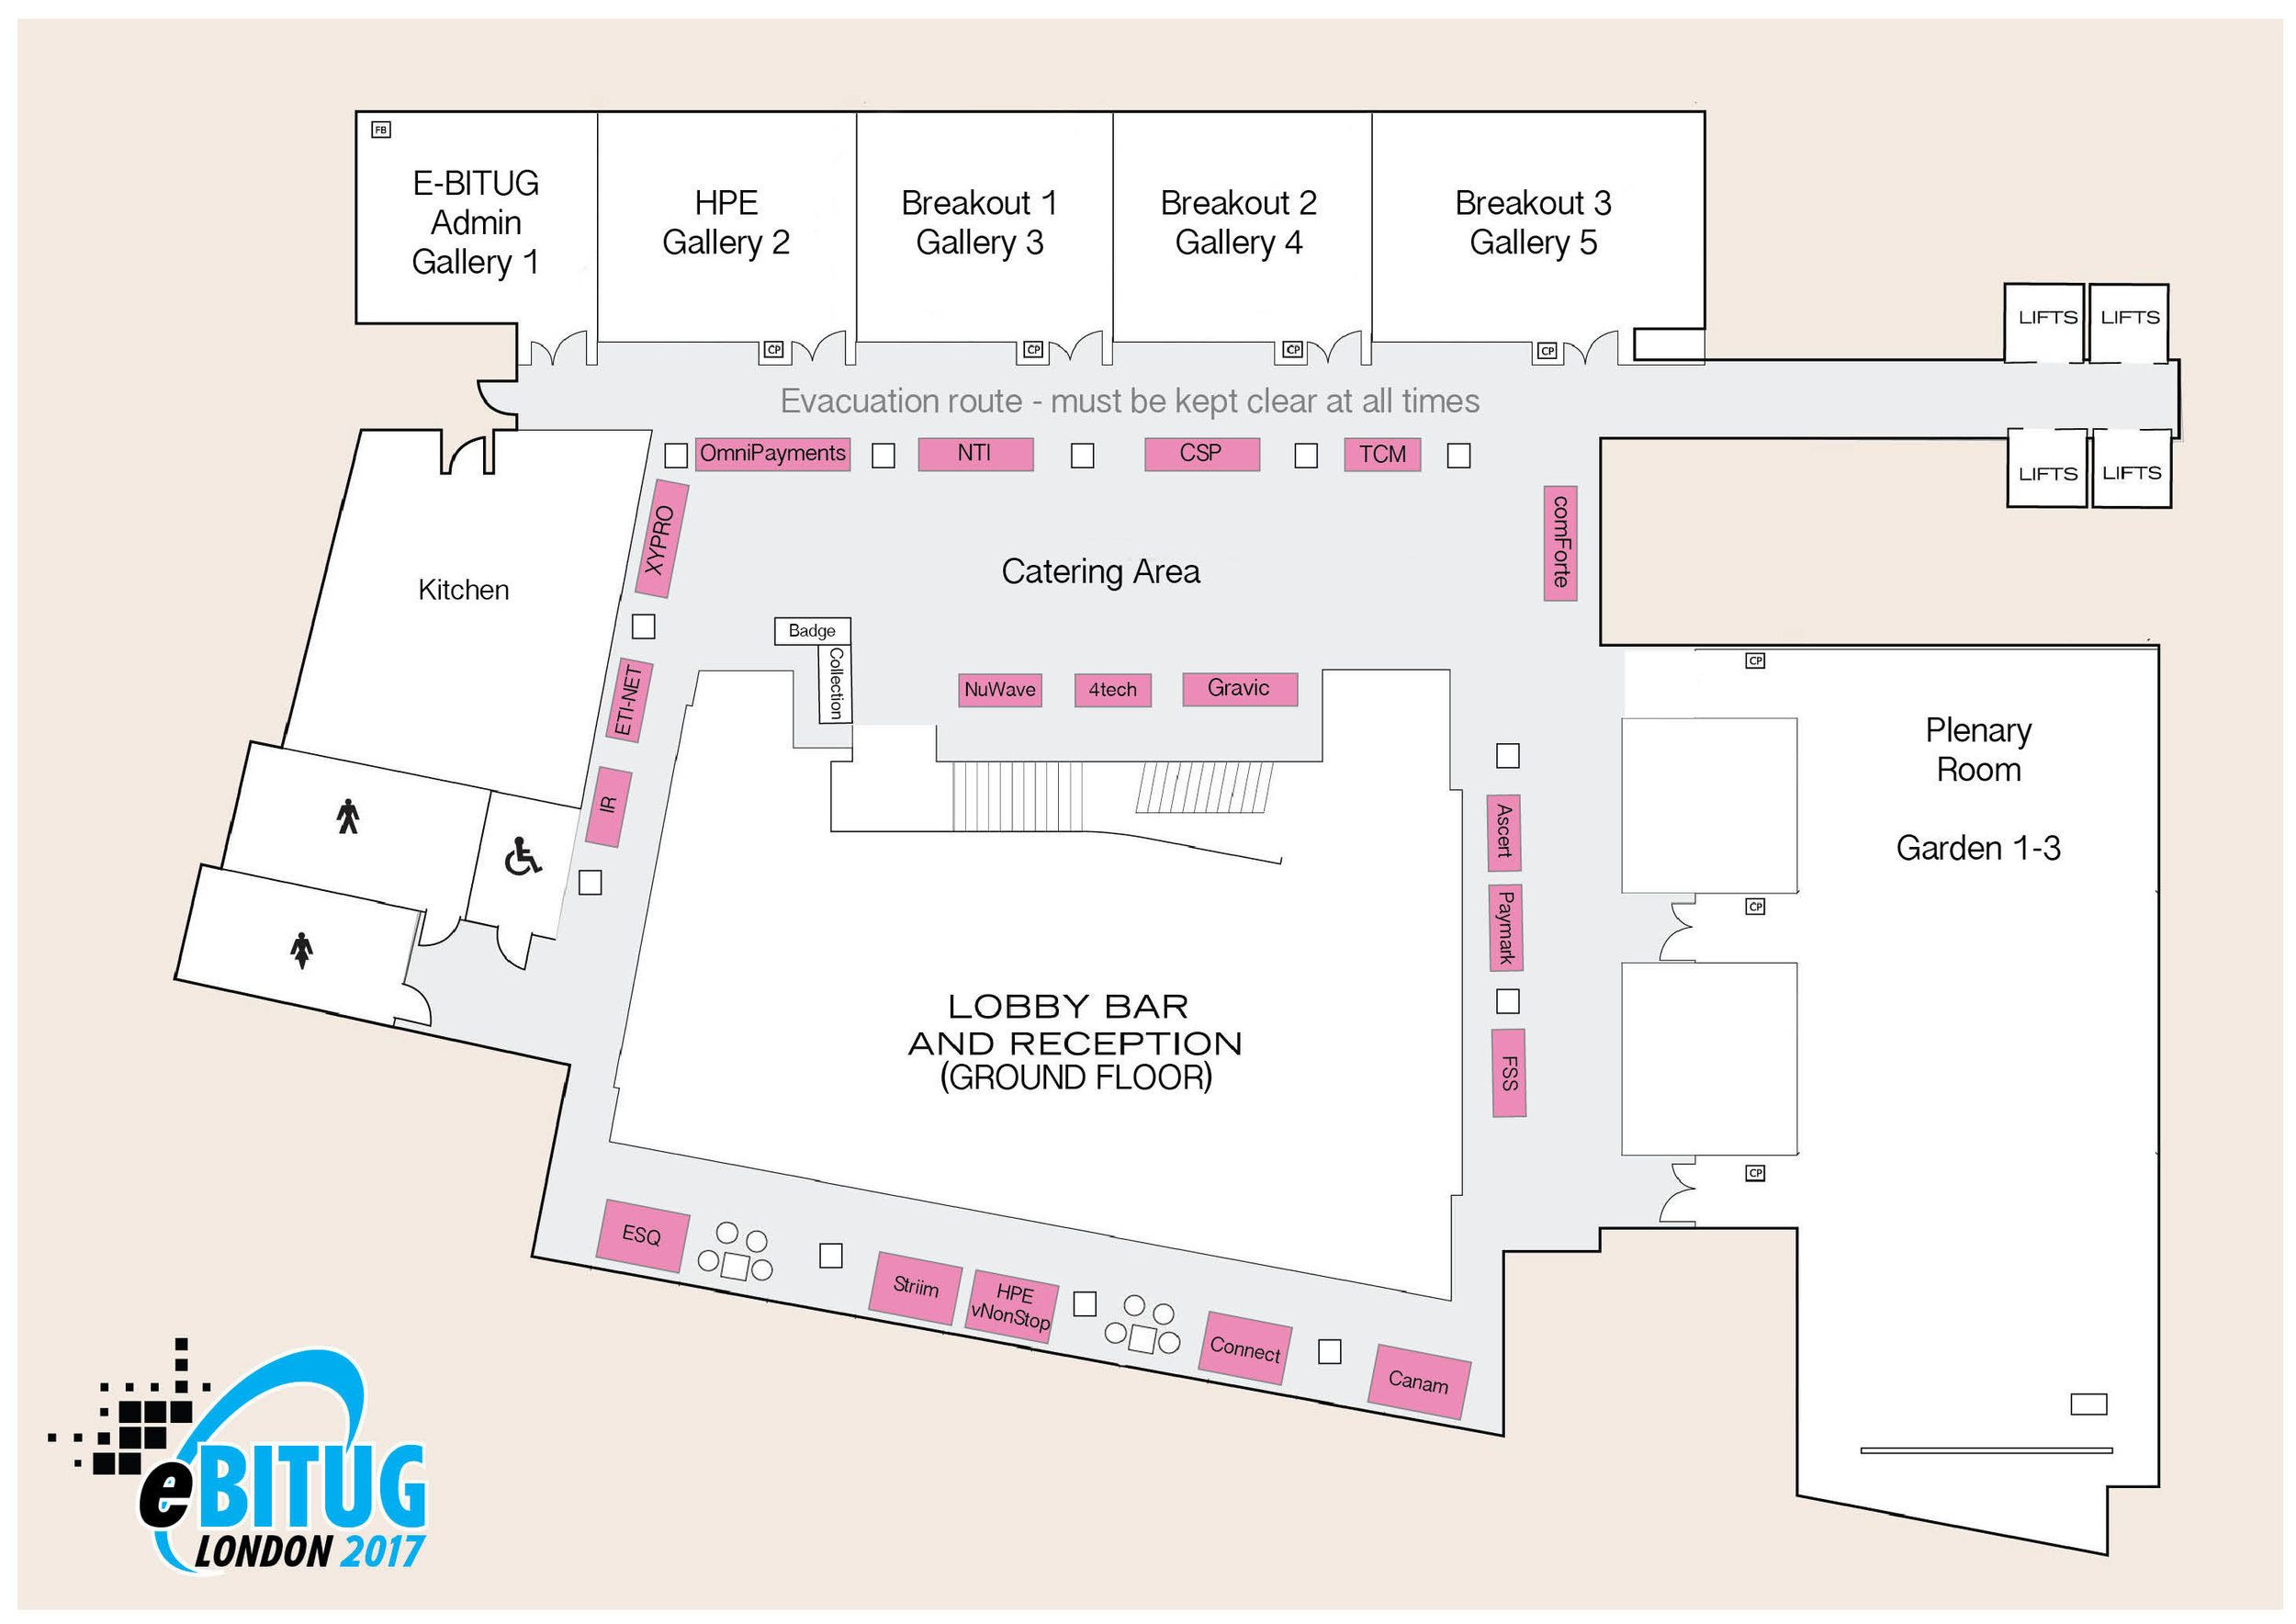 E-BITUG 2017 booth plan